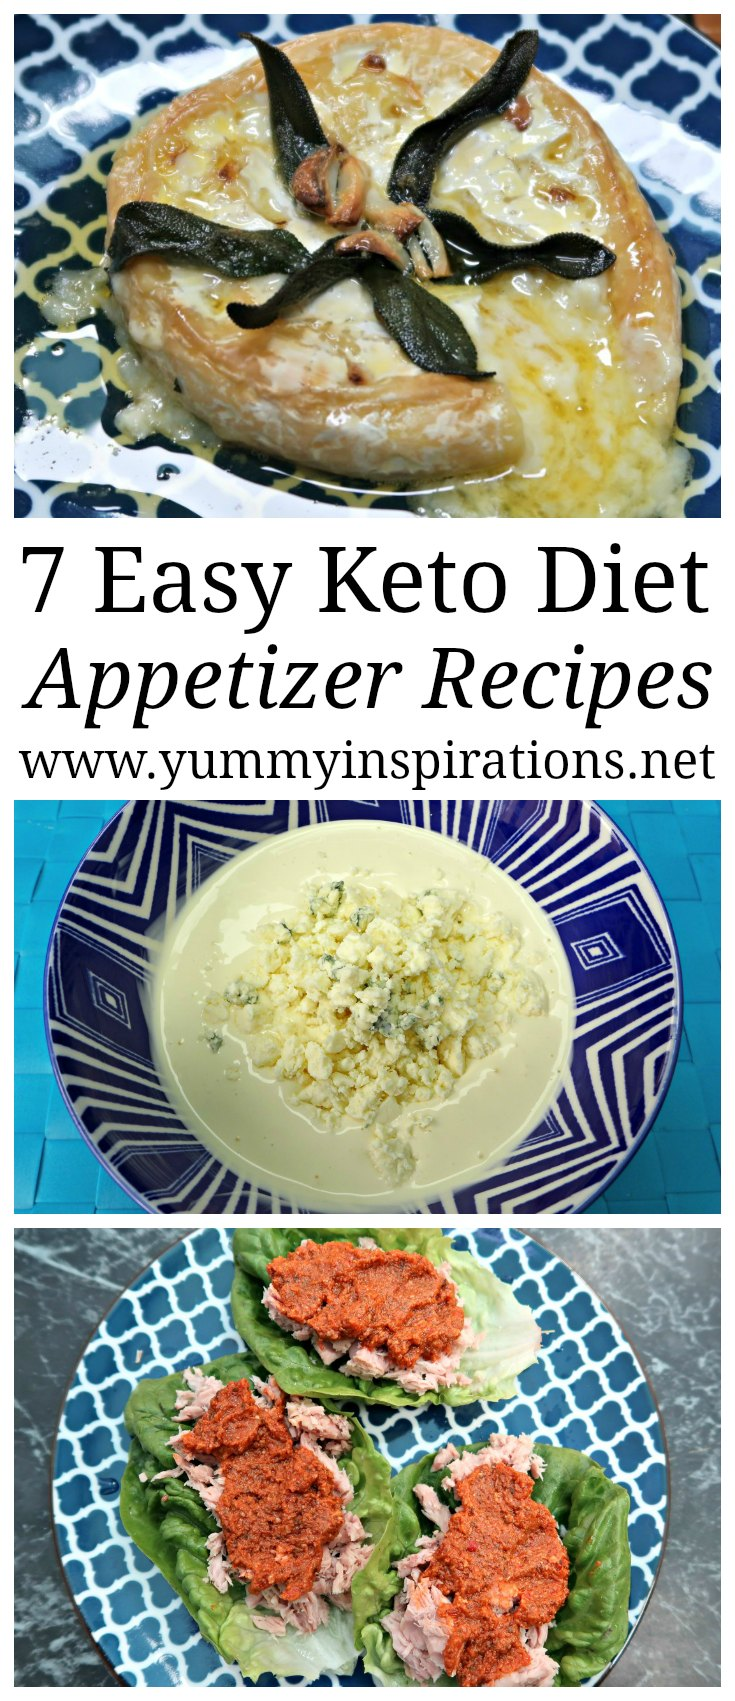 7 Easy Keto Appetizers Recipes - Simple Low Carb Ketogenic Diet Appetizer finger food ideas for game day, parties, Thanksgiving, Christmas and other holidays. Including stuffed mushrooms, cold vegetarian ideas and more grain and gluten free ideas!